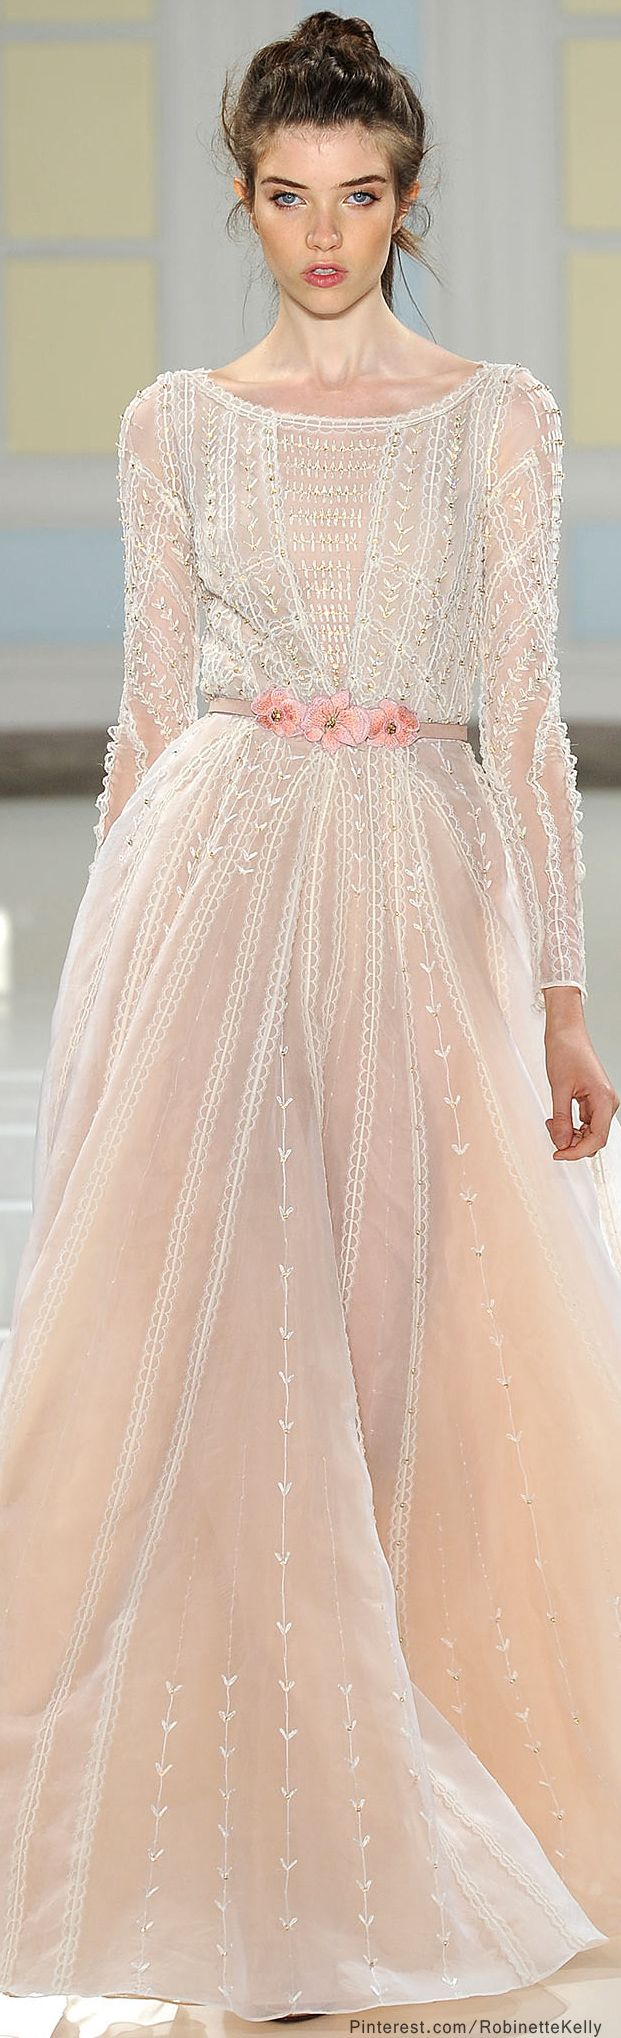 best my vintage obsession images on pinterest beautiful dresses